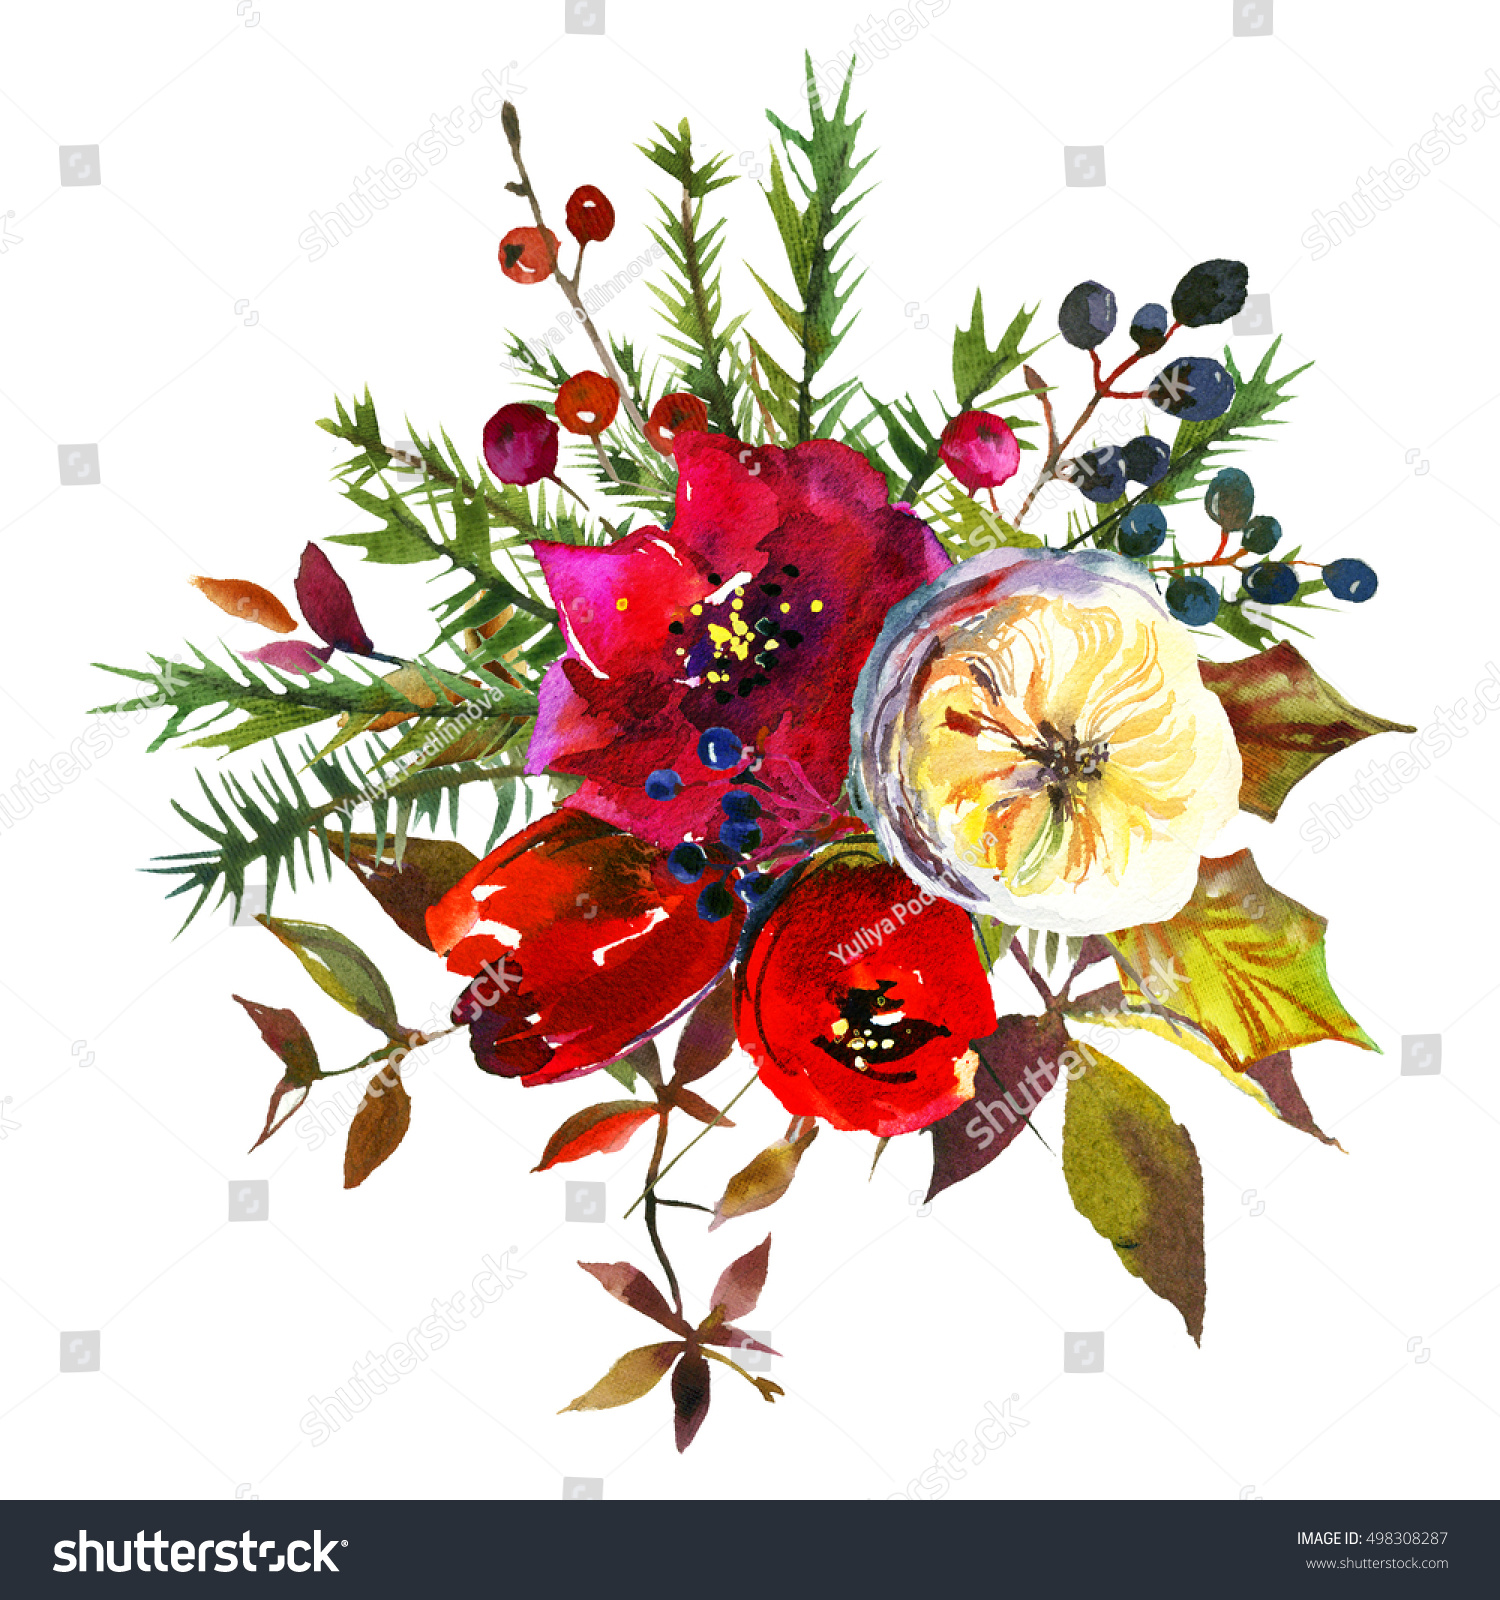 Winter Christmas Floral Bright Bouquet Red Stock Illustration ...